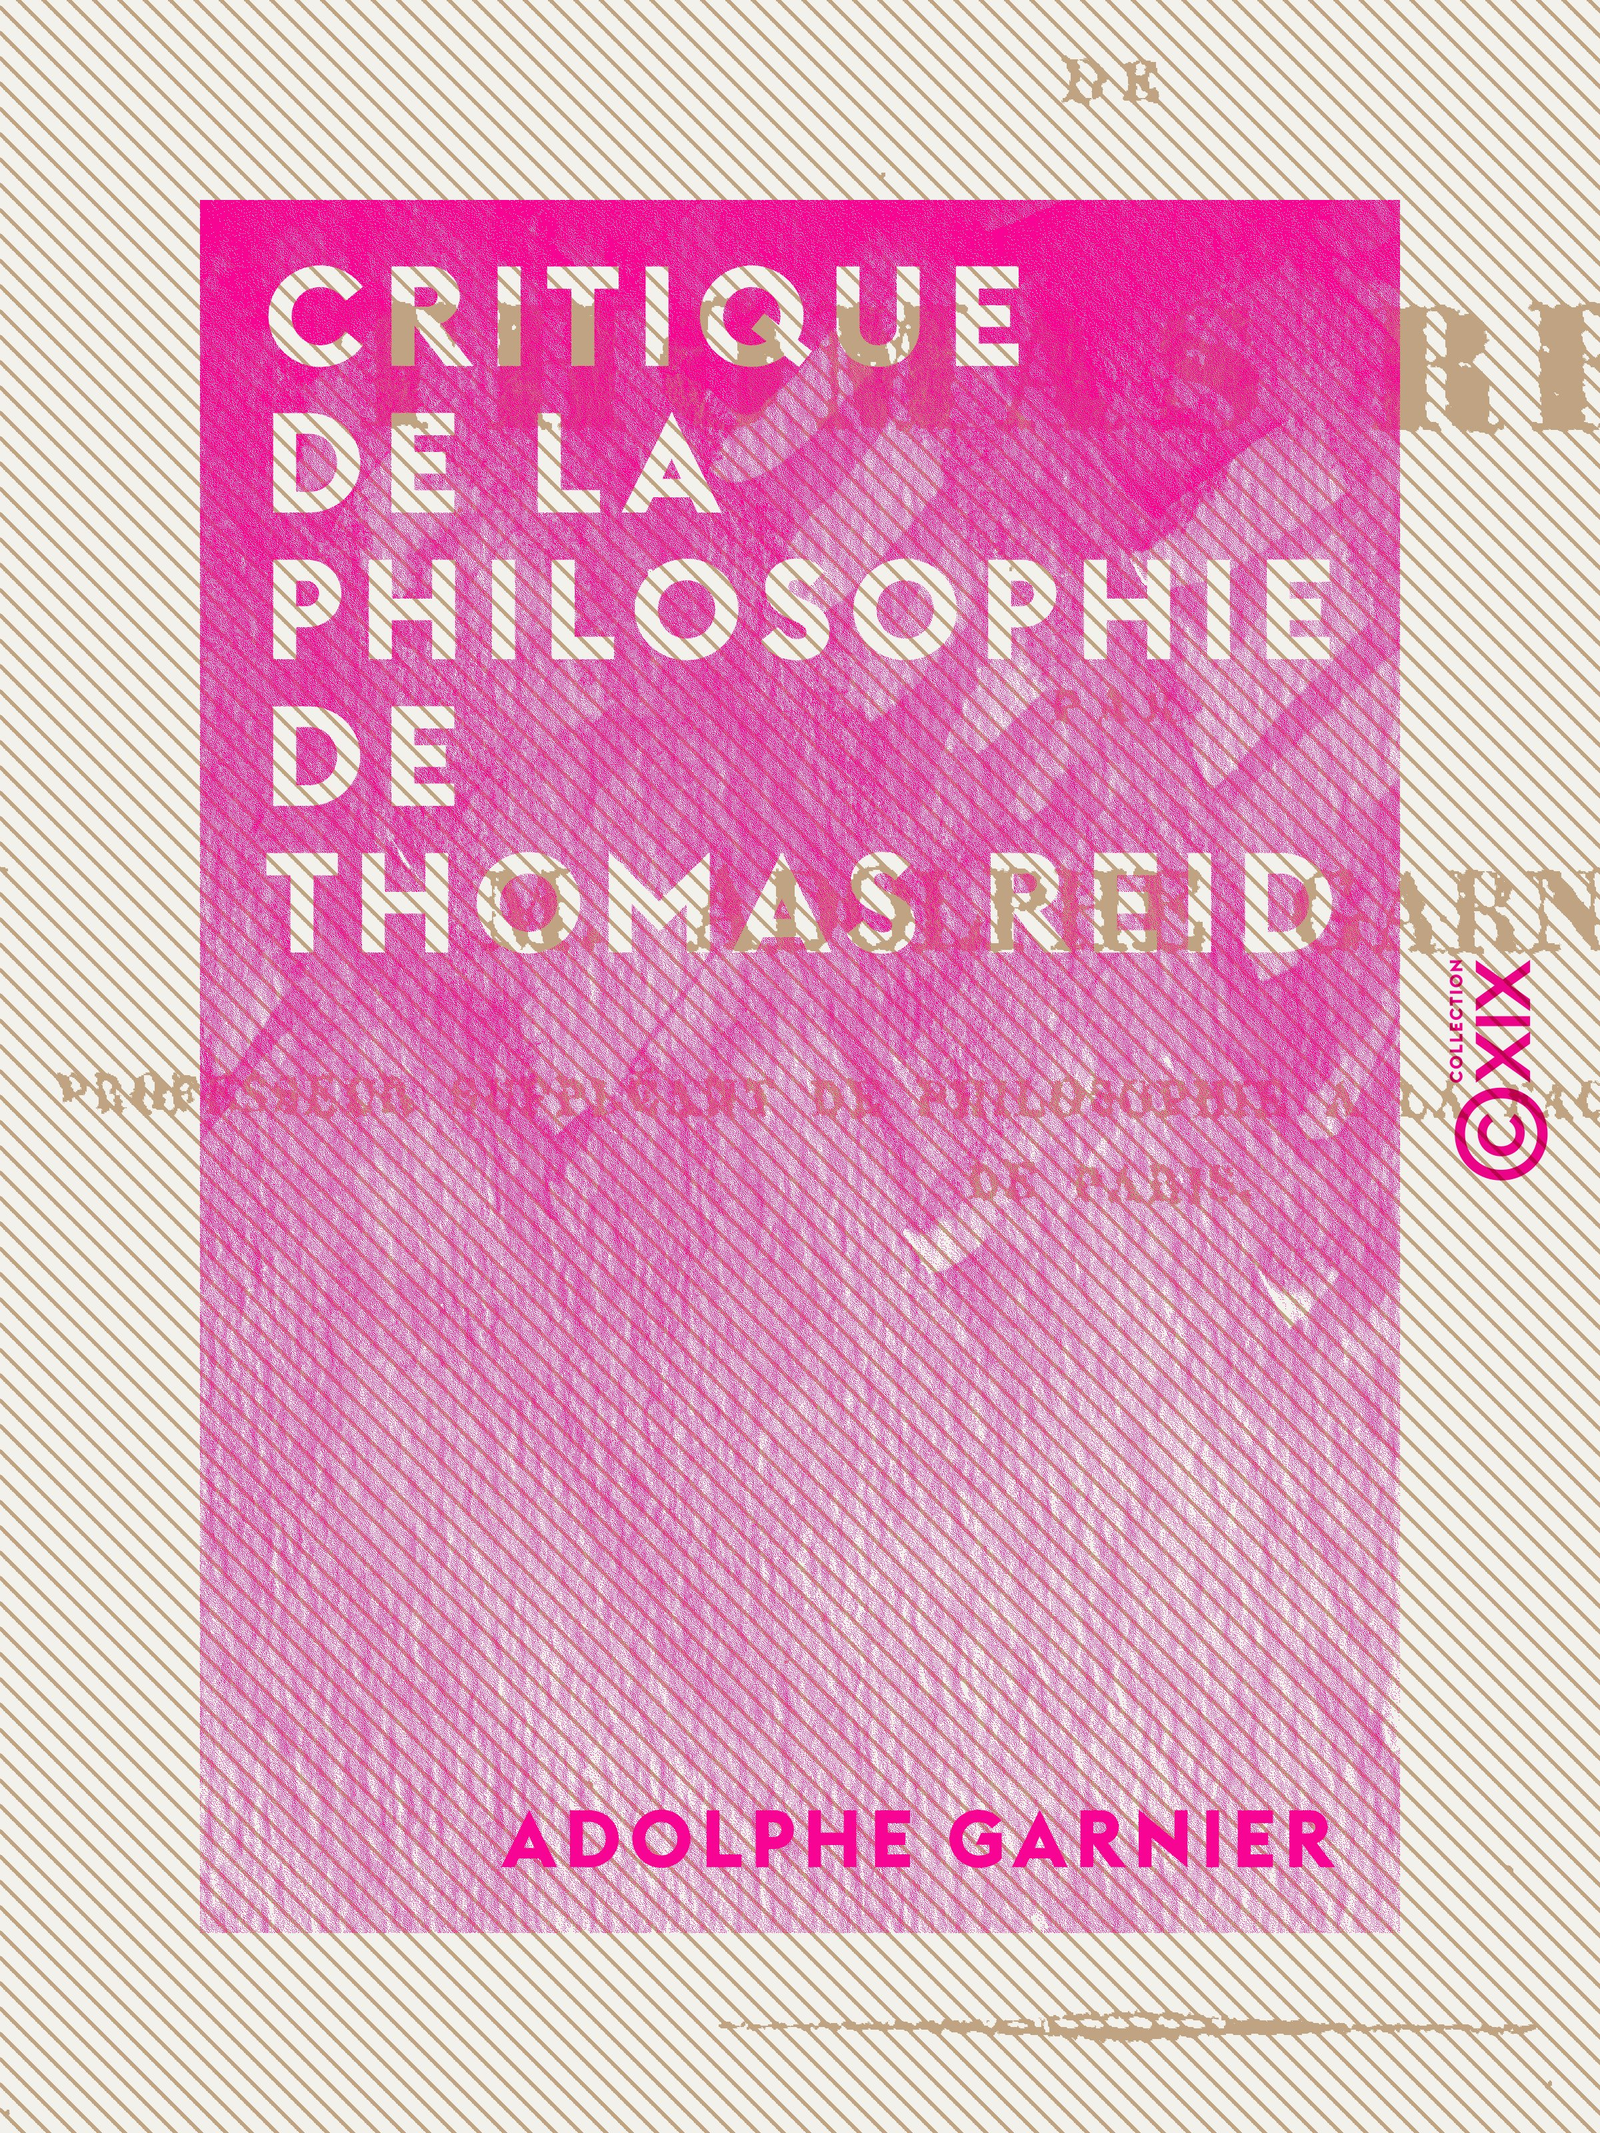 Critique de la philosophie de Thomas Reid